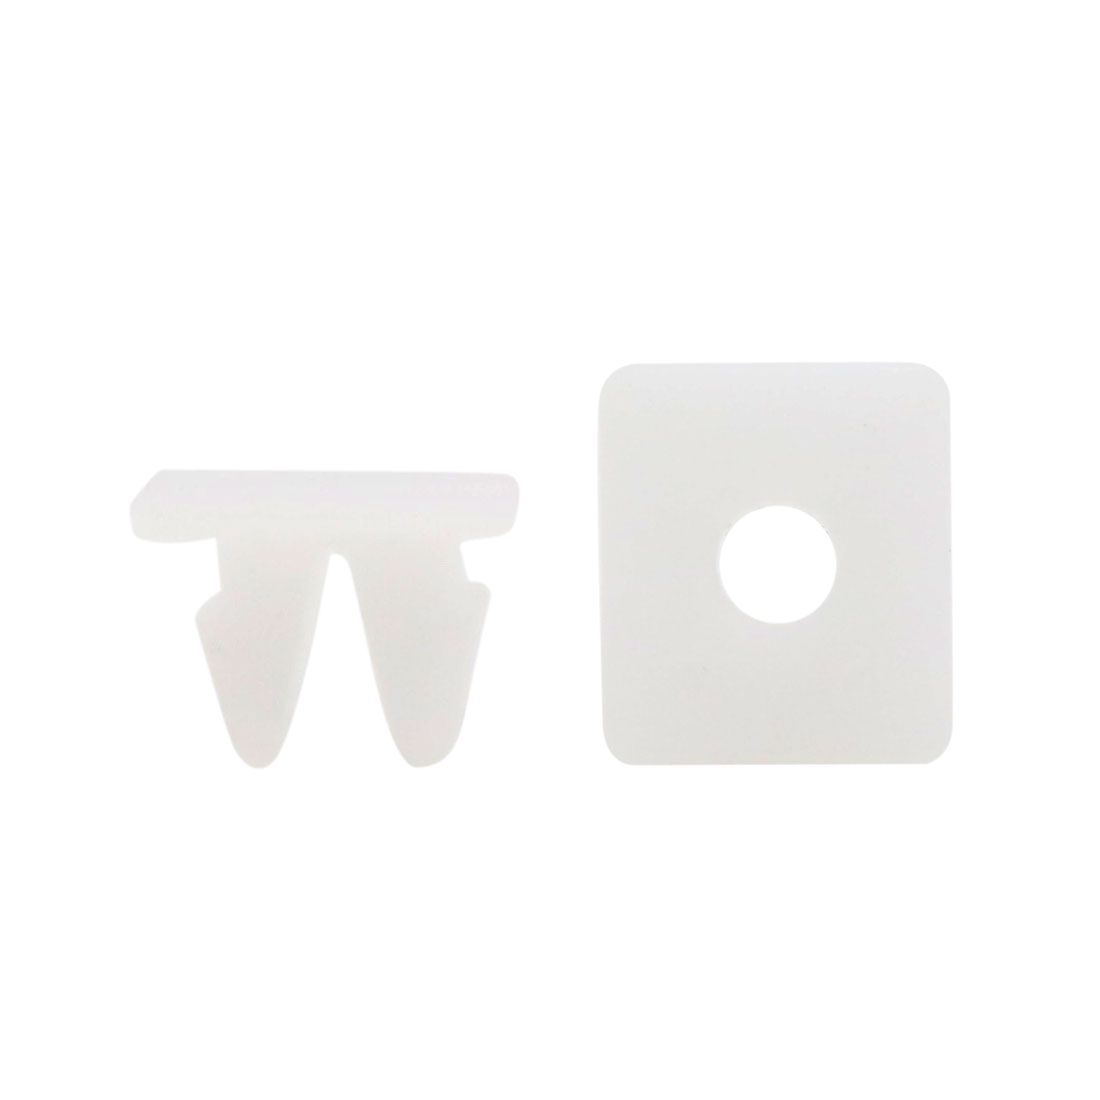 100pcs White Plastic Rivet Trim Fastener Moulding Clips for 10mm x 10mm Dia Hole